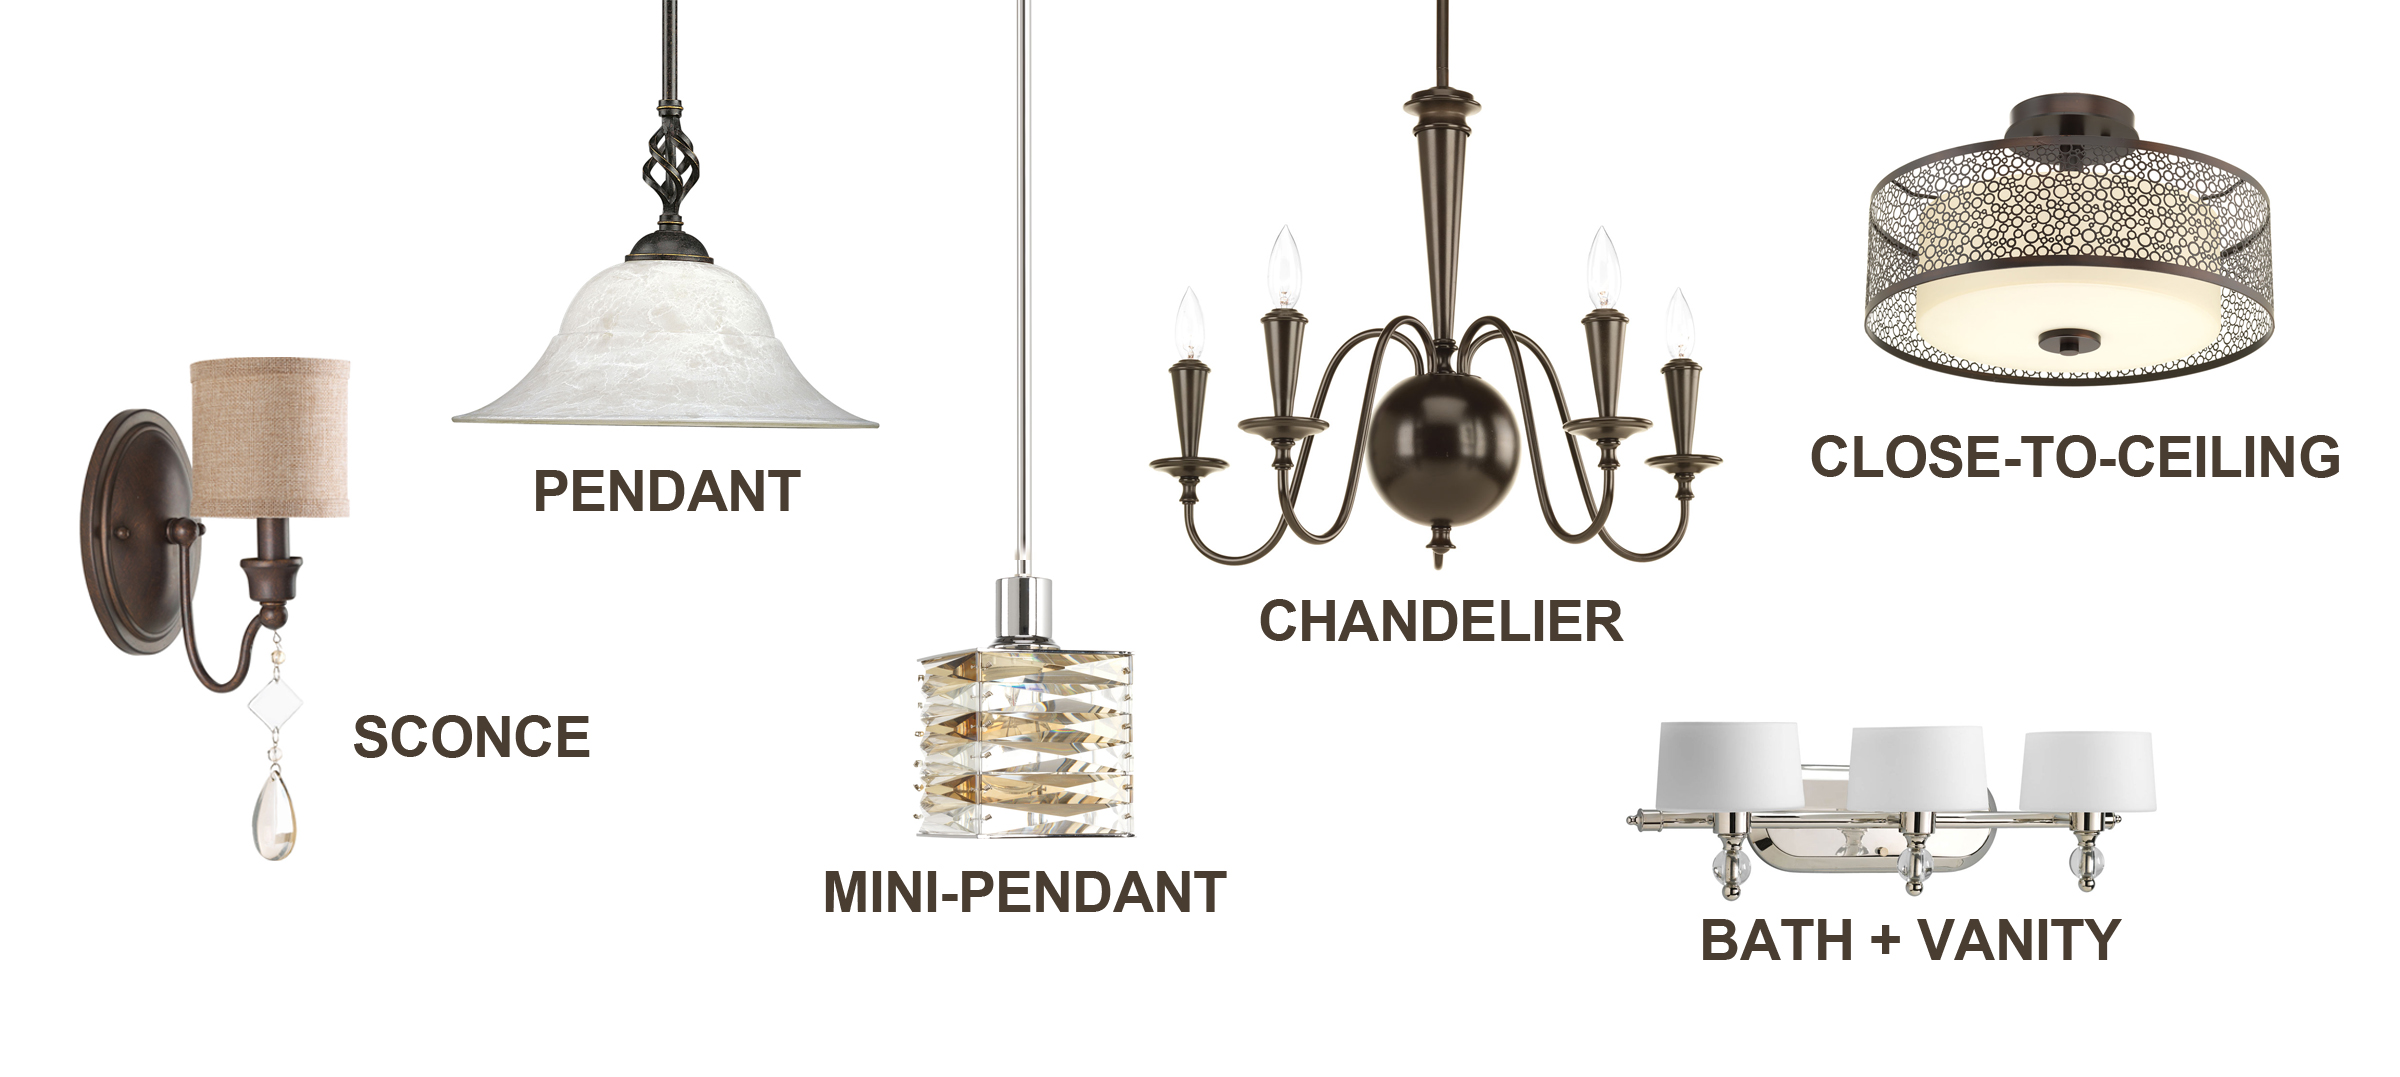 Lighting Lingo You Should Know When Building a New Home